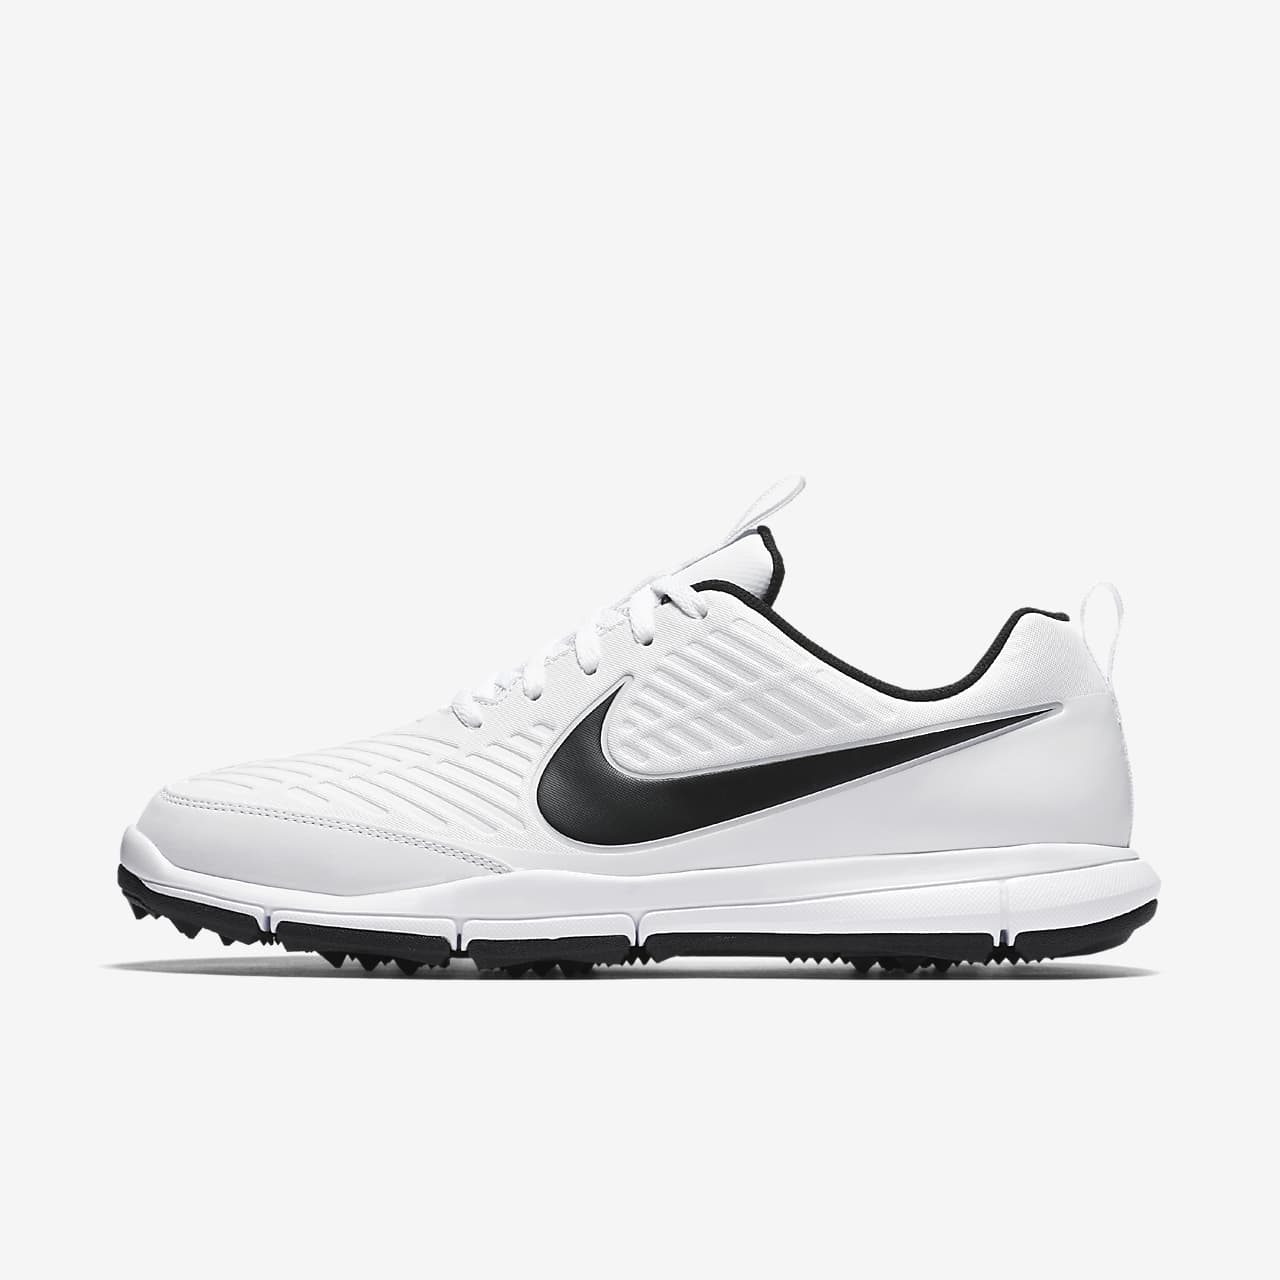 Nike Explorer 2 Golf Shoes Online Hotsell, UP TO 54% OFF